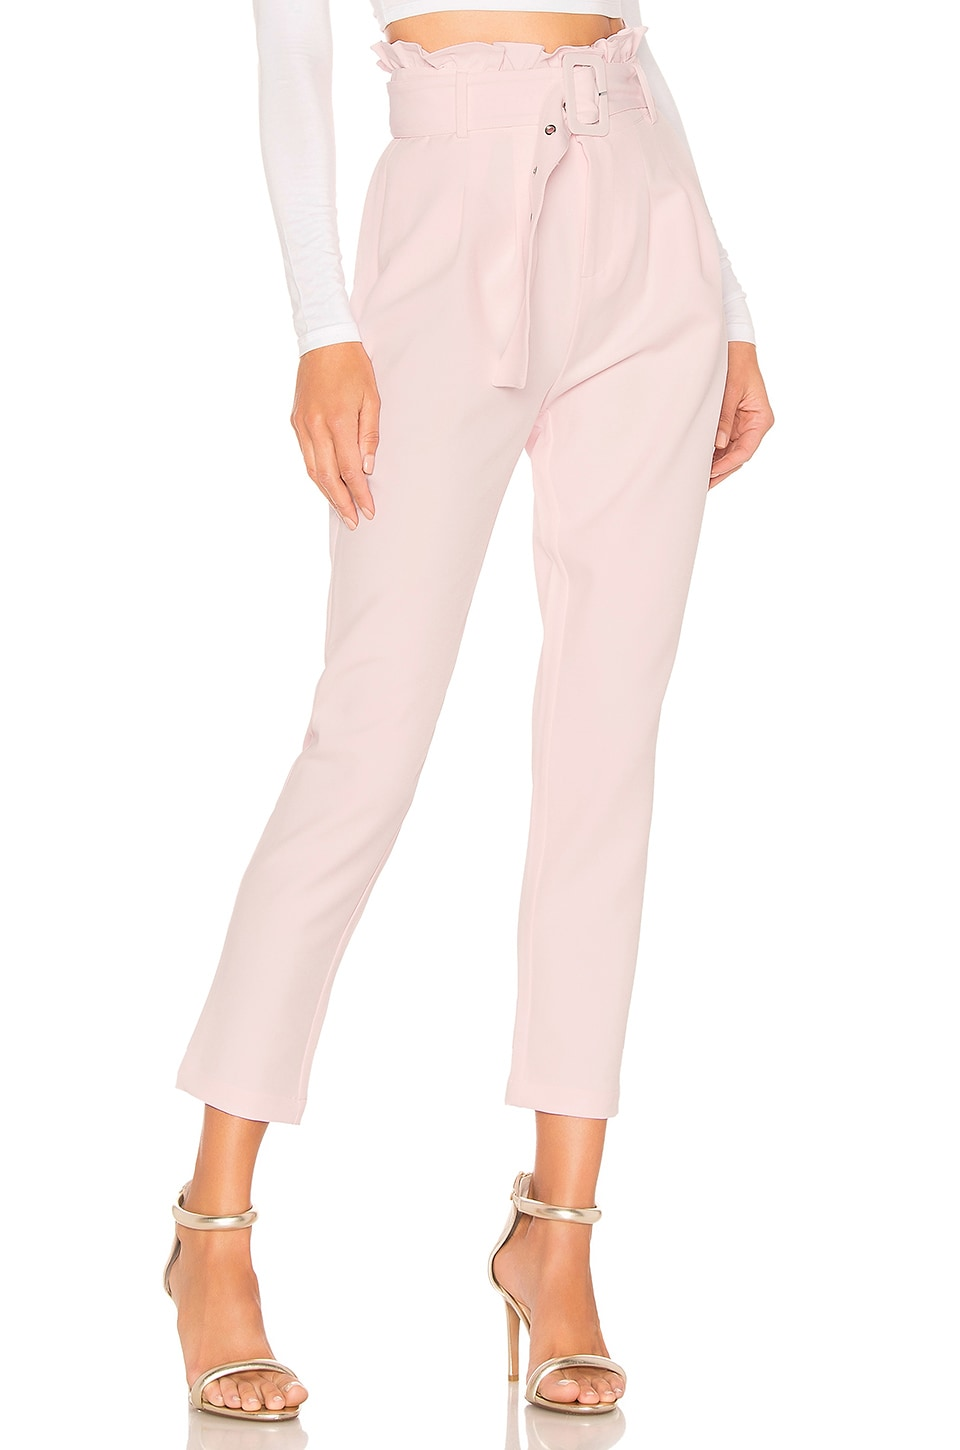 Lovers + Friends Eugene Pants in Blush